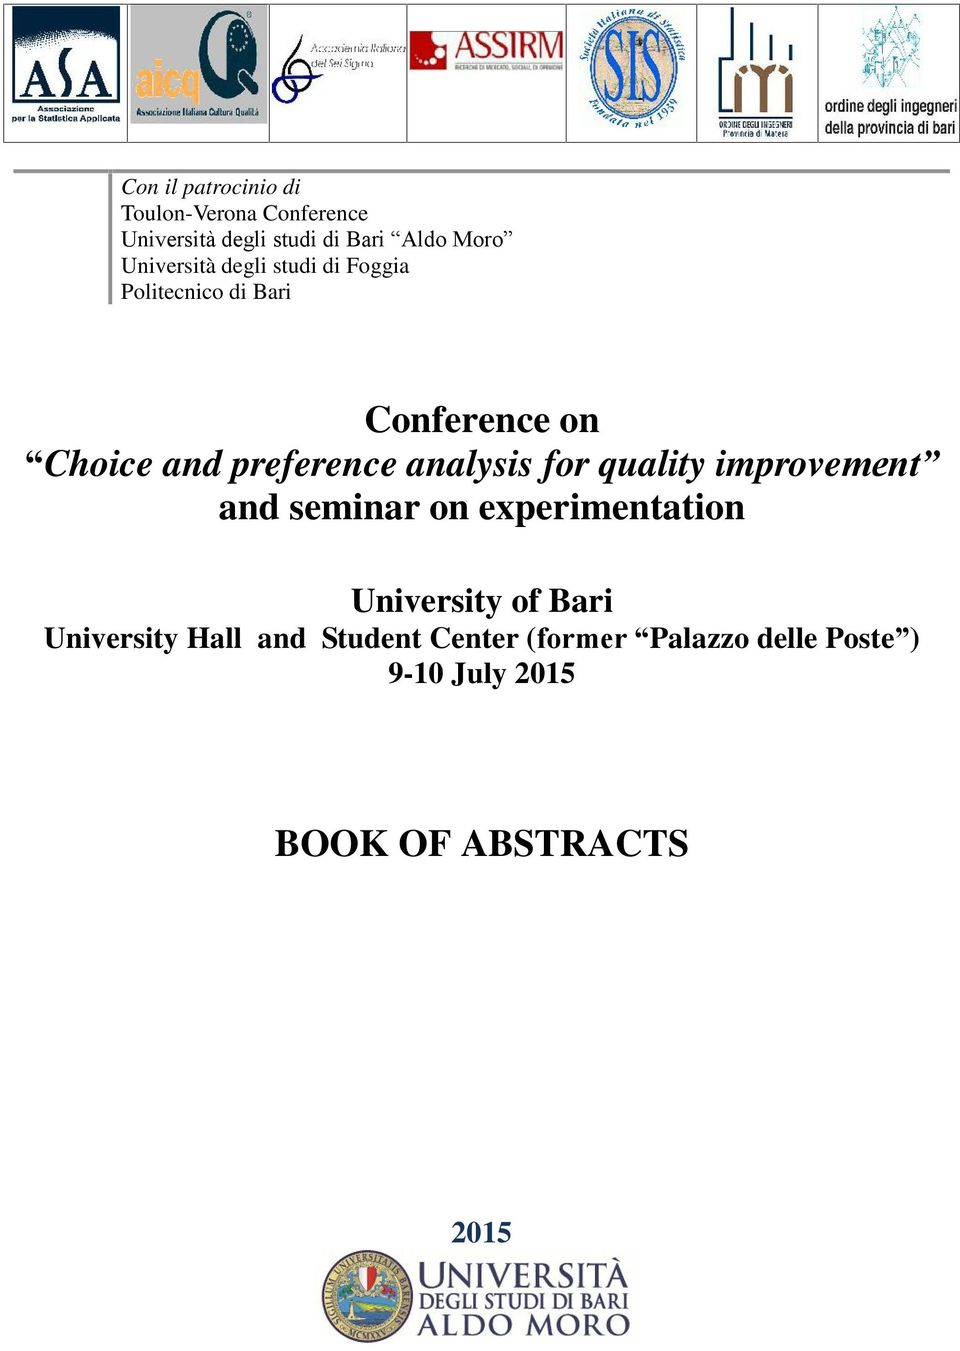 analysis for quality improvement and seminar on experimentation University of Bari